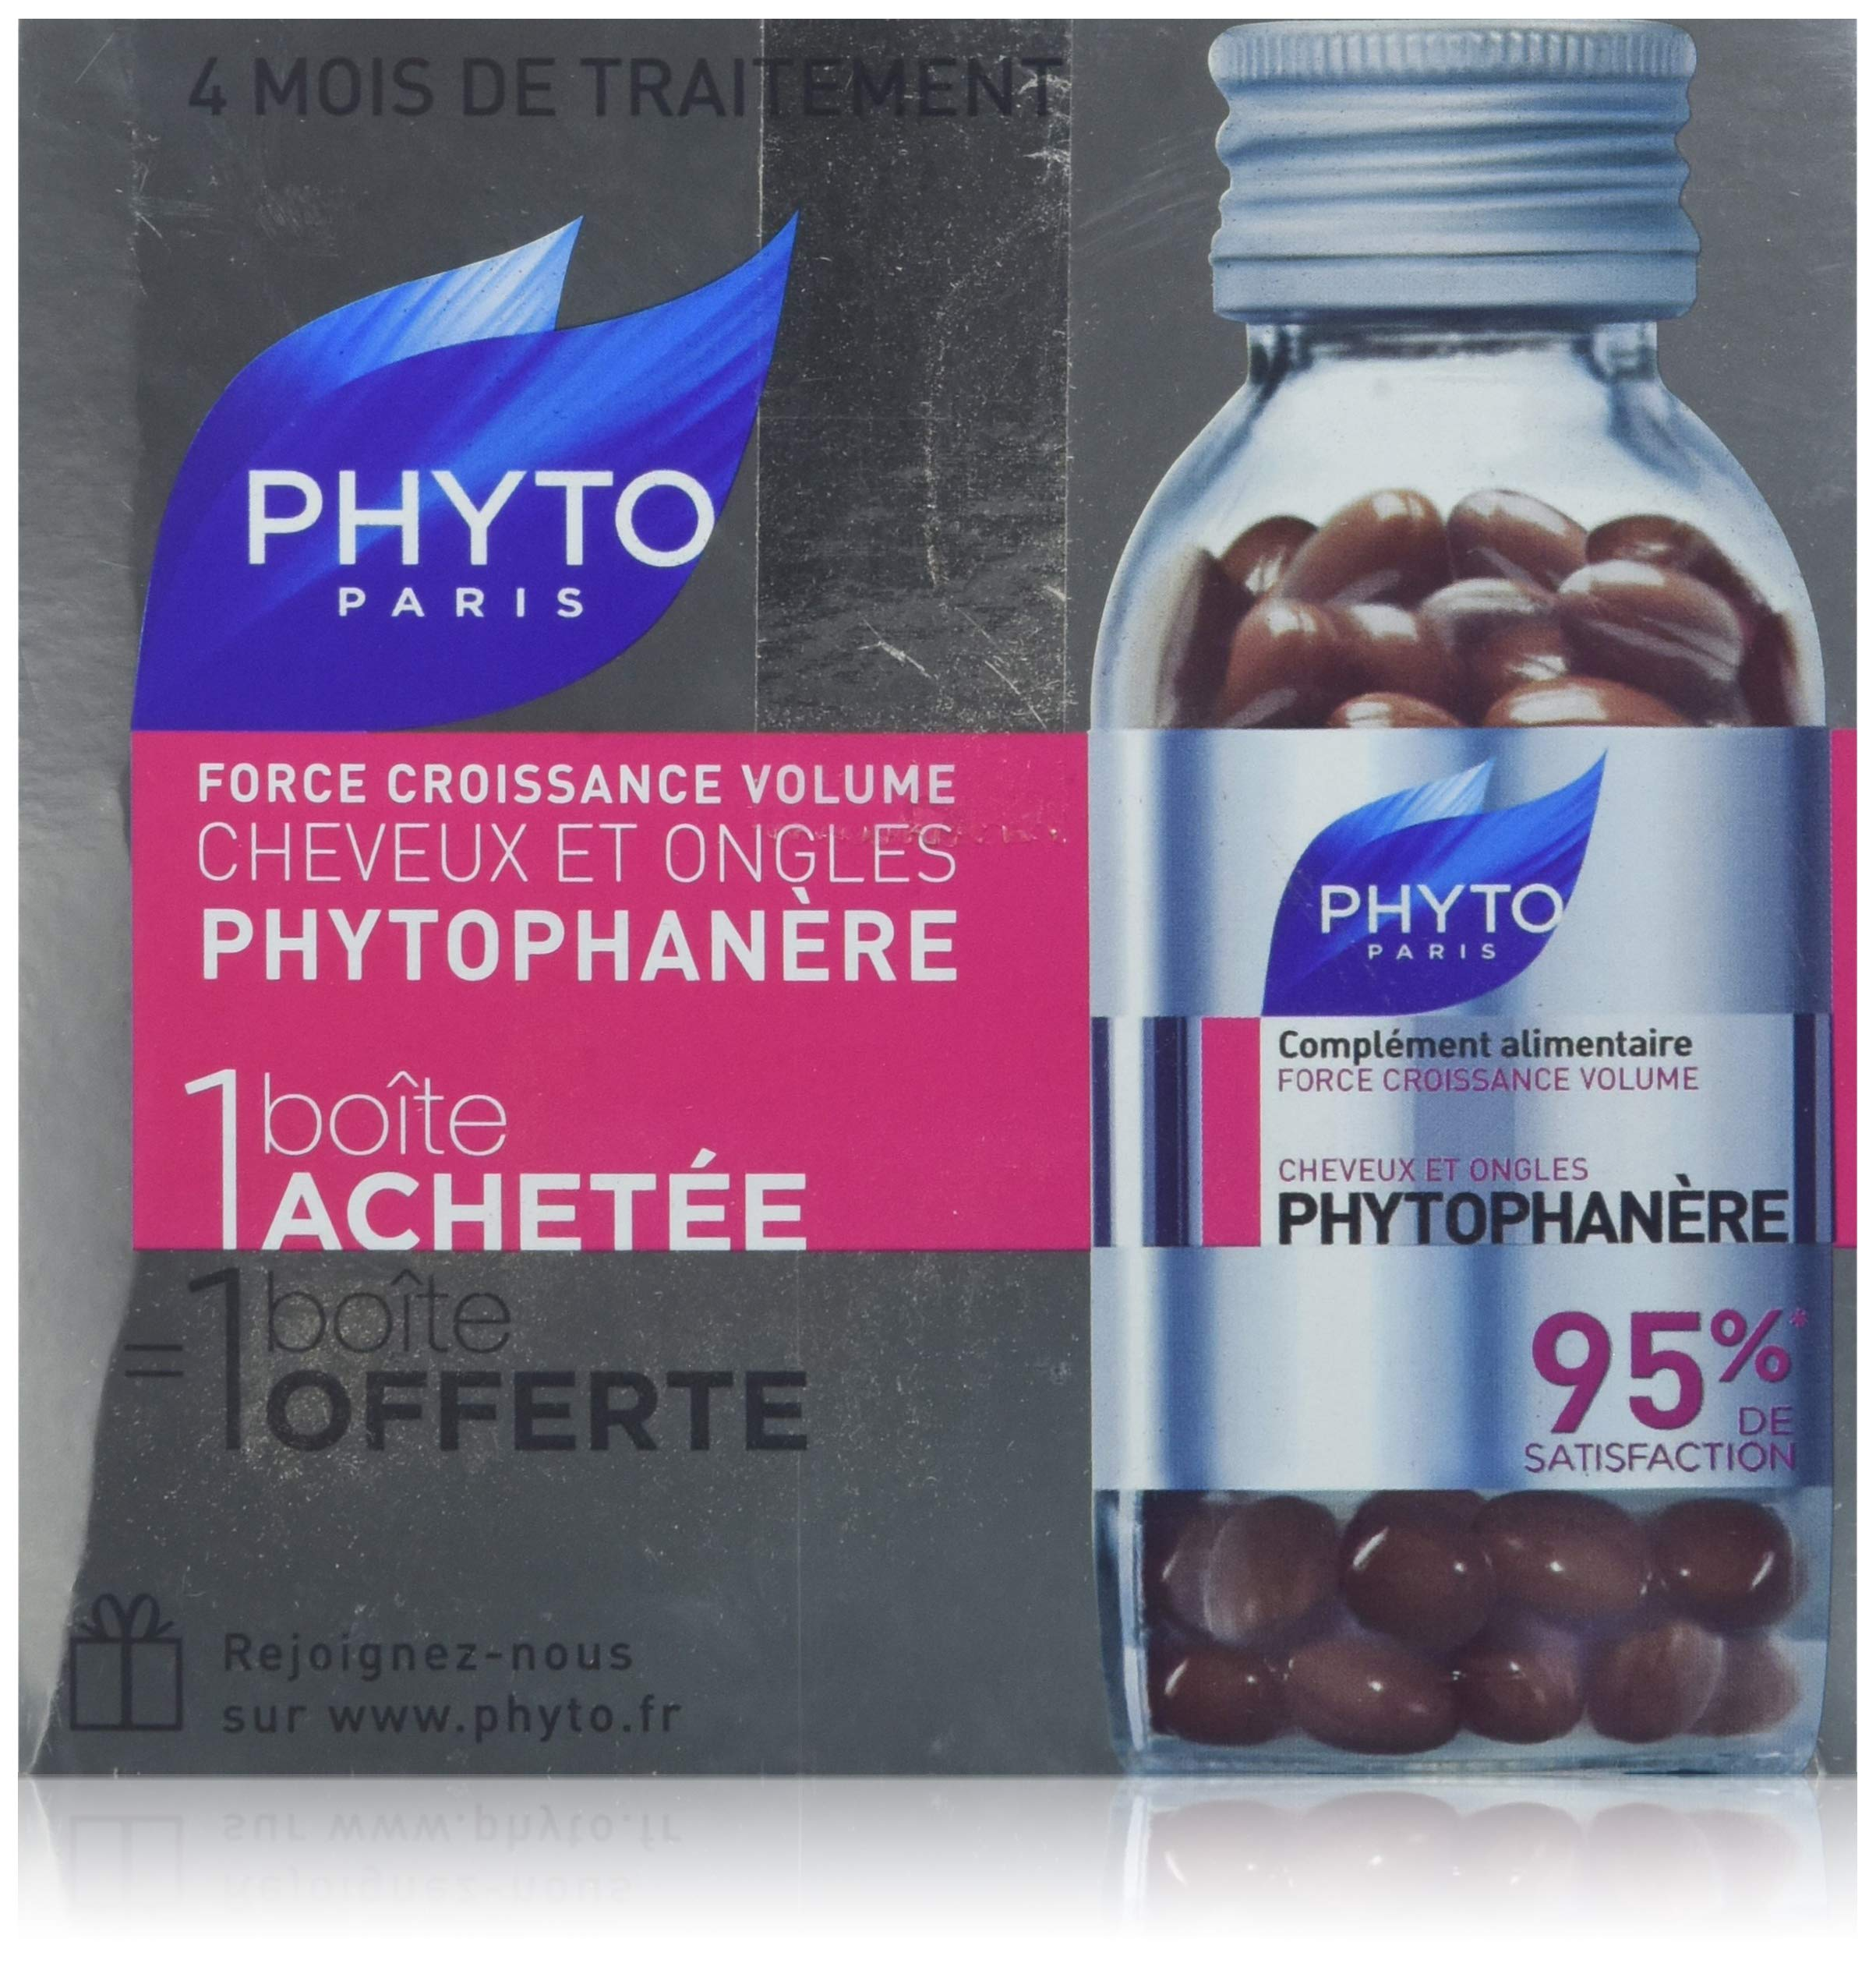 Phyto Phytophan?re Hair and Nails 2 x 120 Gel-Caps product image